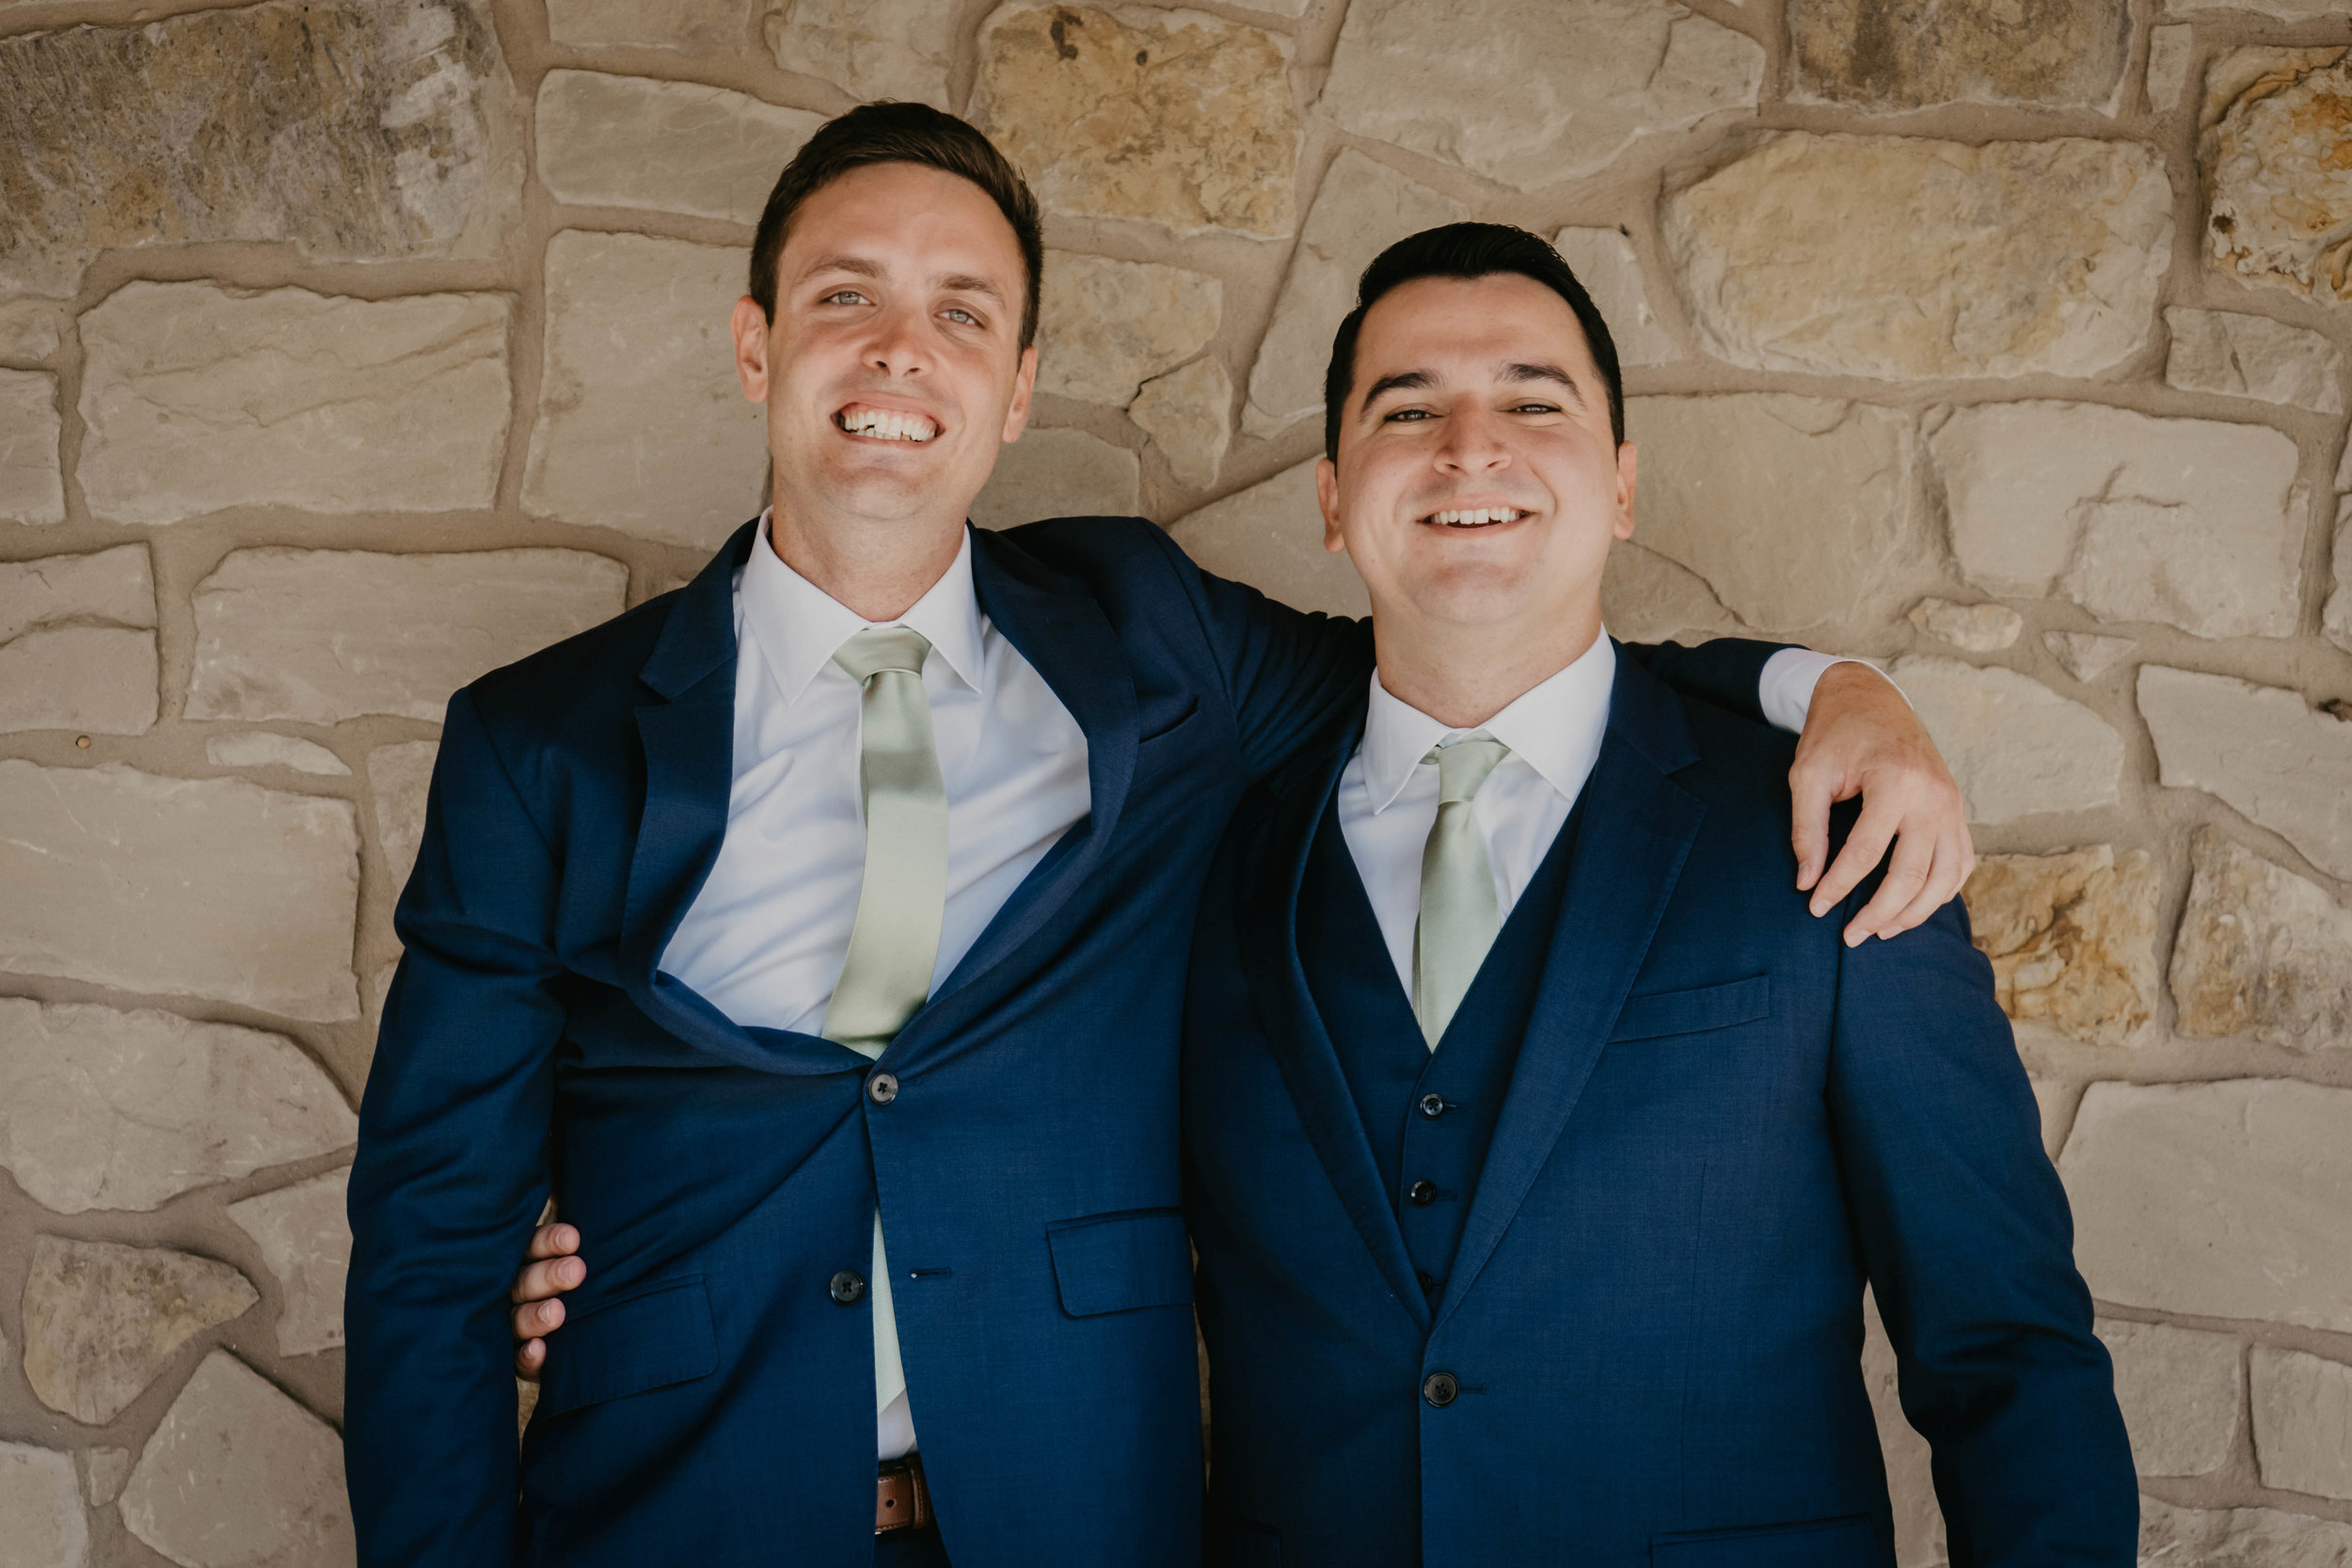 austin-wedding-videographer (267 of 999).jpg